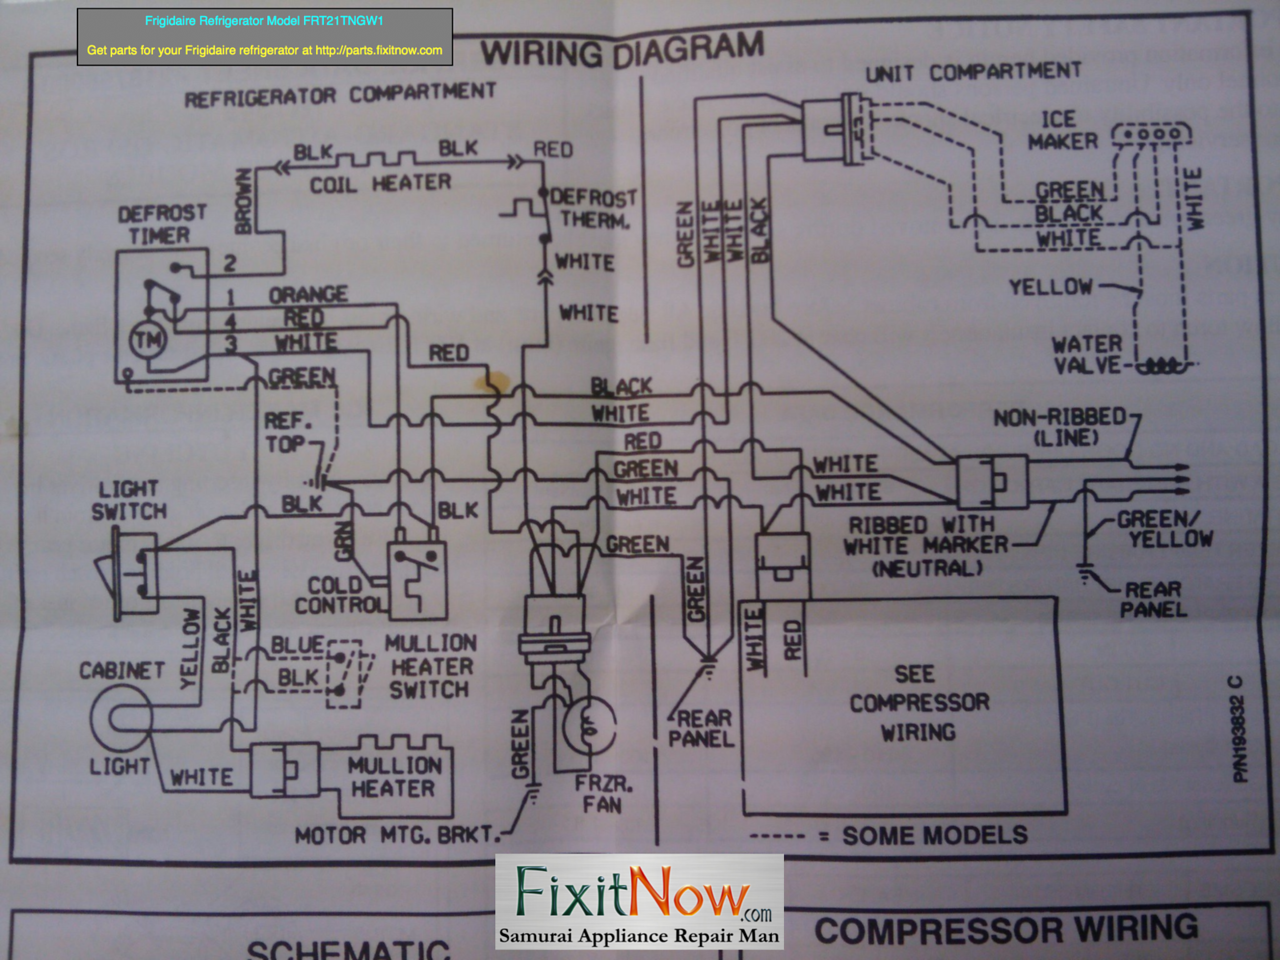 4927632513_66c123c922_o X2 wiring diagrams and schematics appliantology wiring diagram for frigidaire air conditioner at mifinder.co